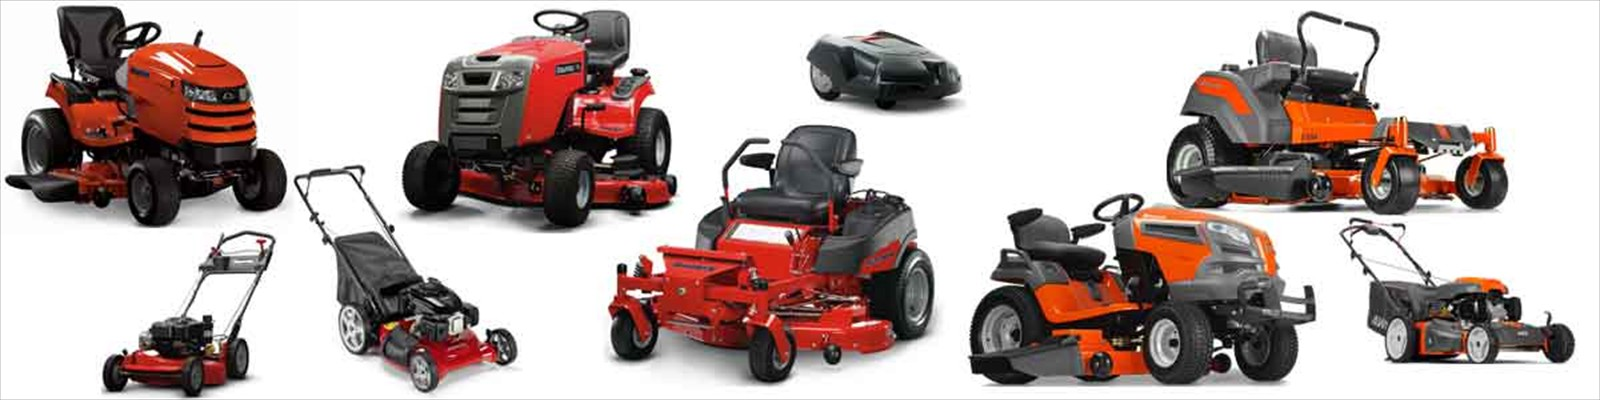 Lawn Mowers by Simplicity, Snapper, Encore, Masport and Jonsered